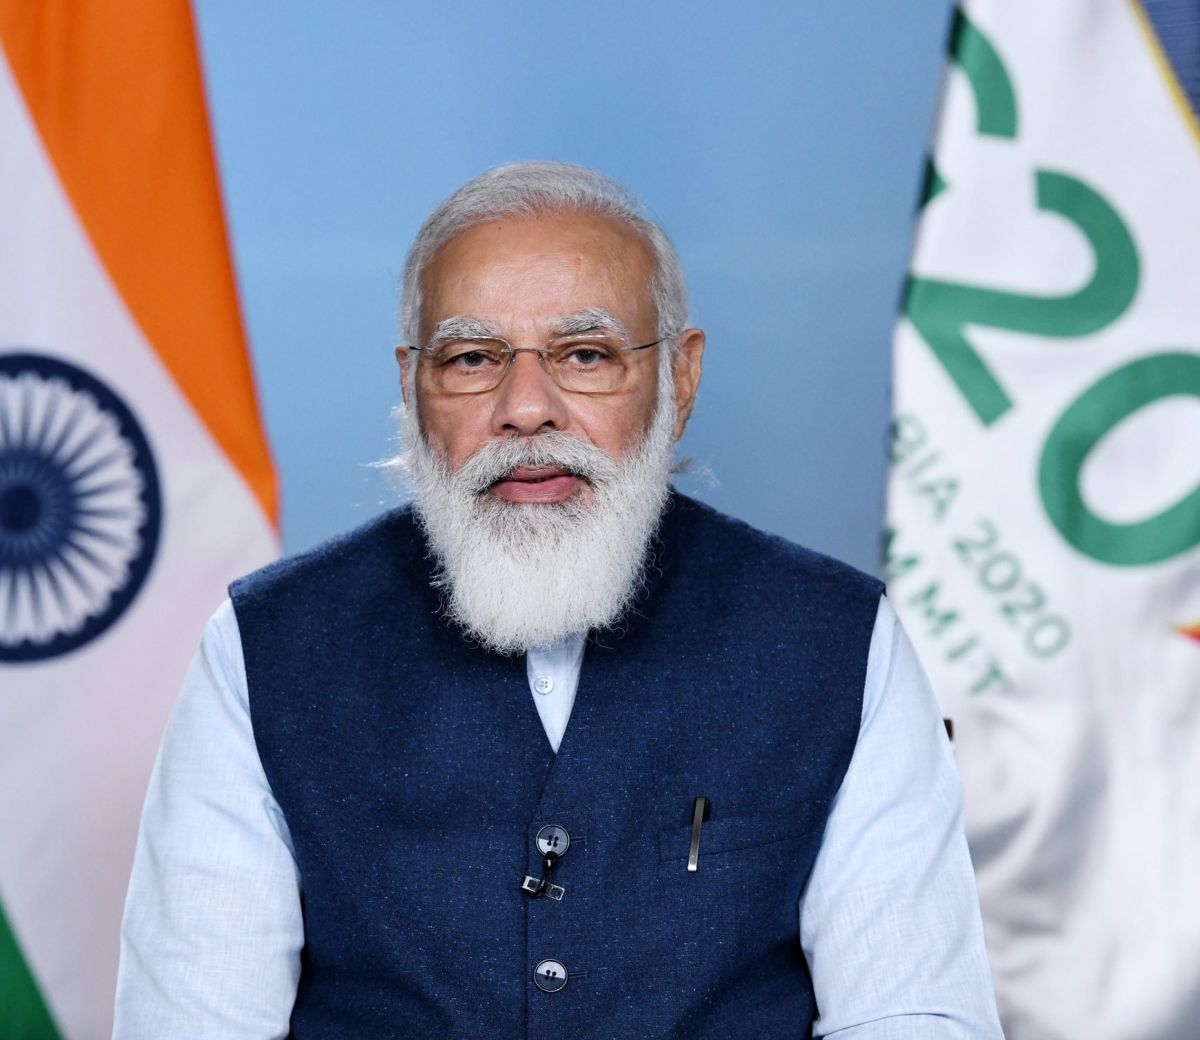 CLAT 2022 CURRENT AFFAIRS (19TH SEPTEMBER)